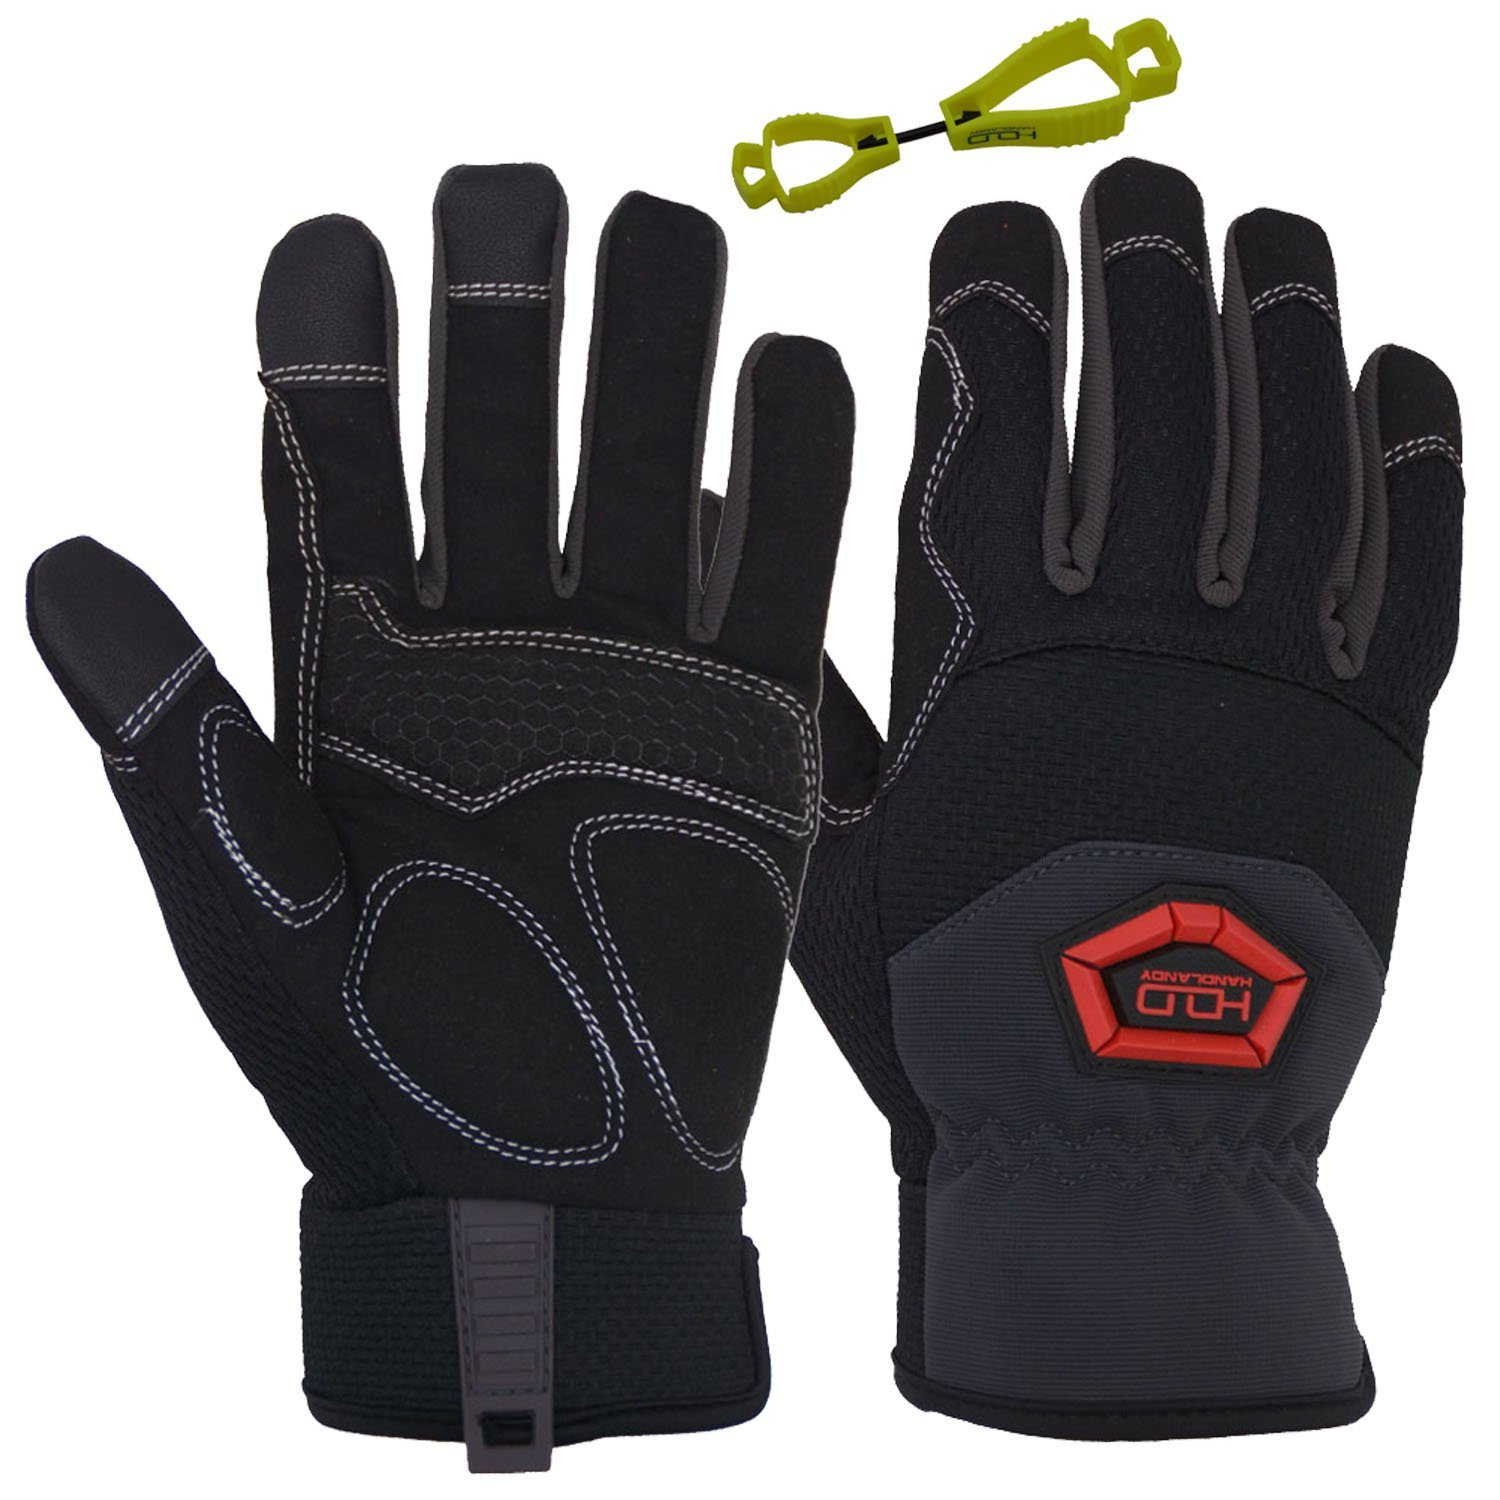 Handlandy Flex Grip Work Gloves Mens, Anti Vibration Impact Gloves- SBR Padded Palm, Improved Dexterity, Stretchable, Extra Large